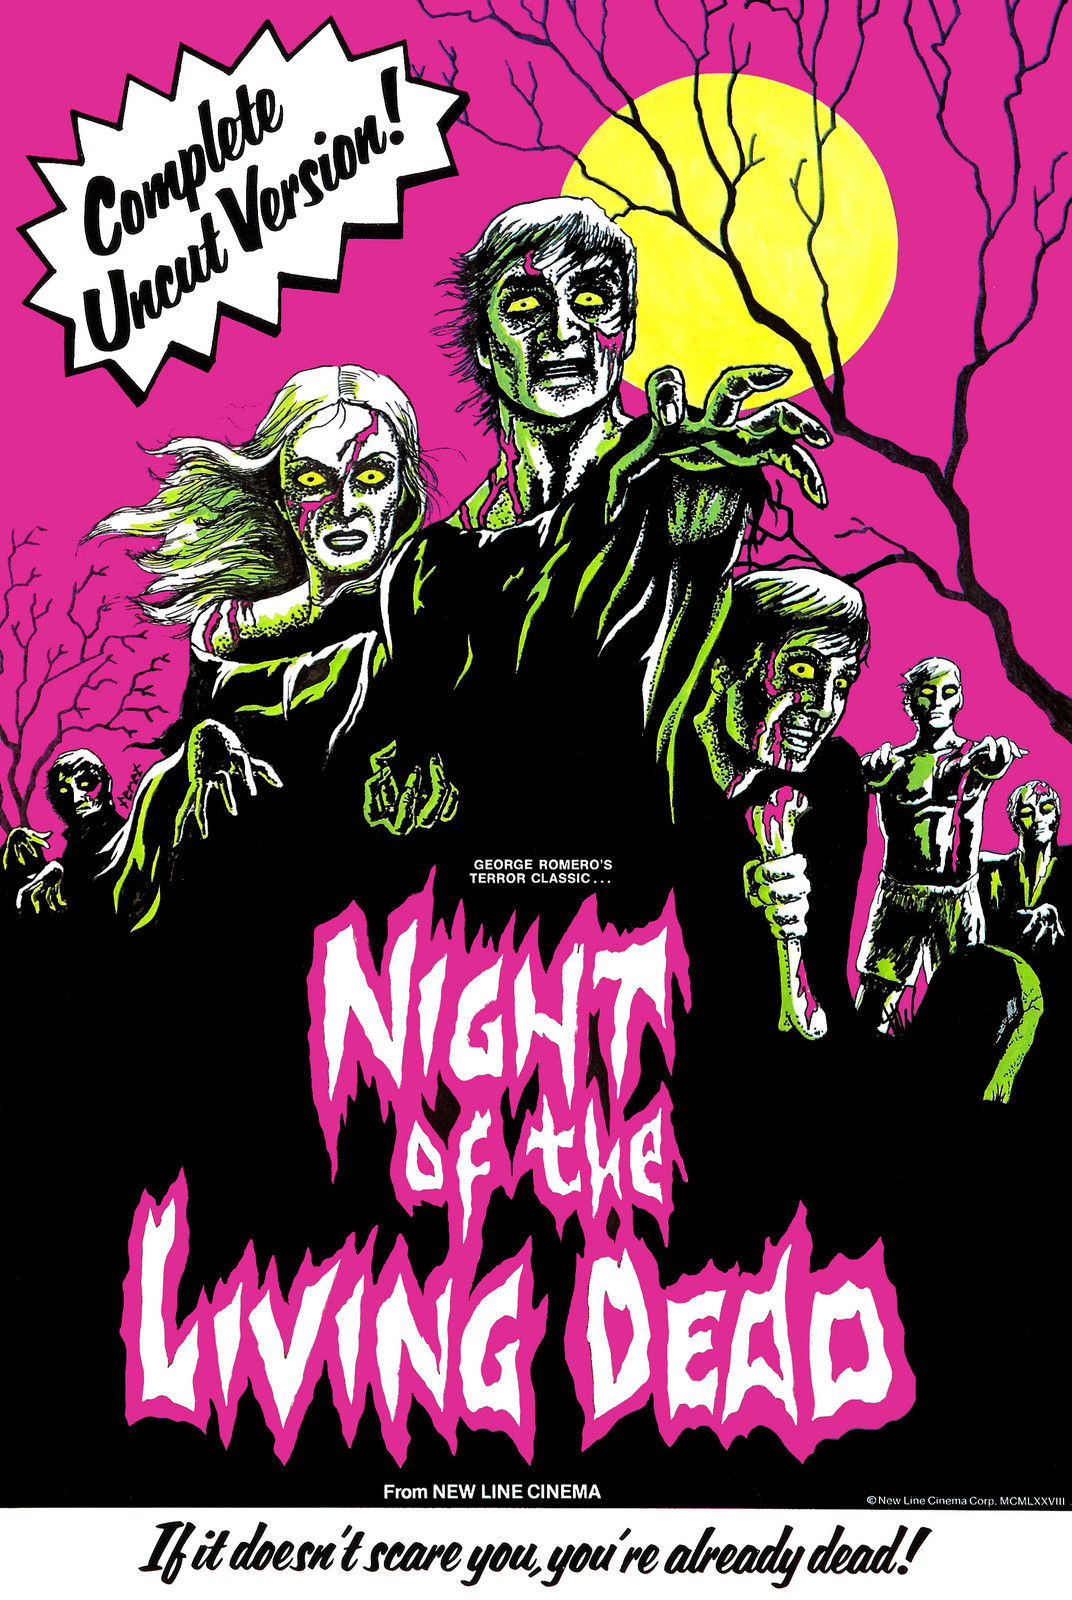 187793-Night-of-the-Living-Dead-1968-Uncut-MOVIE-retro-Wall-Print-Poster-Affiche